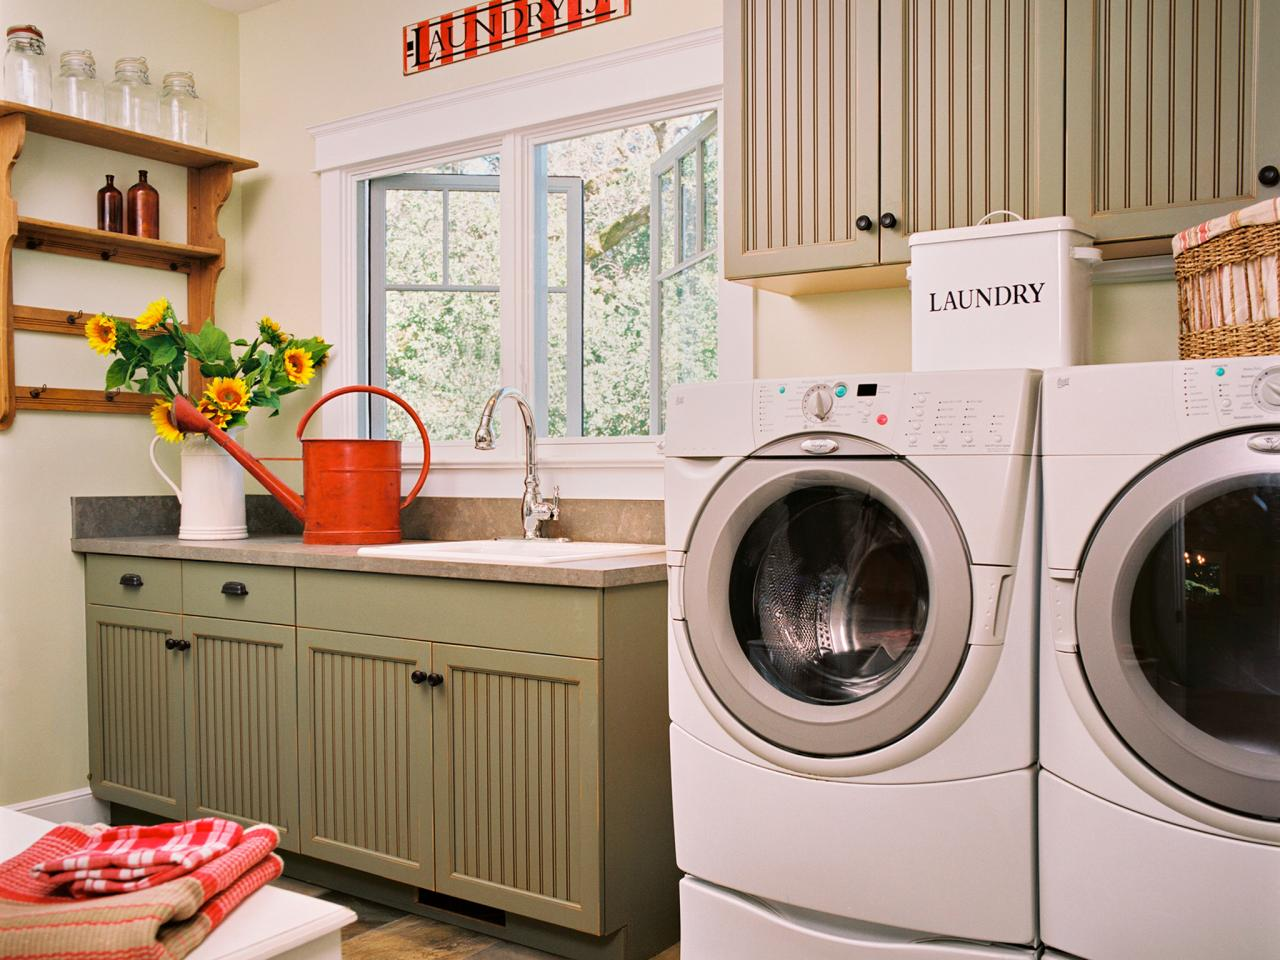 Laundry room makeover ideas pictures options tips advice hgtv - Small space makeovers ideas ...